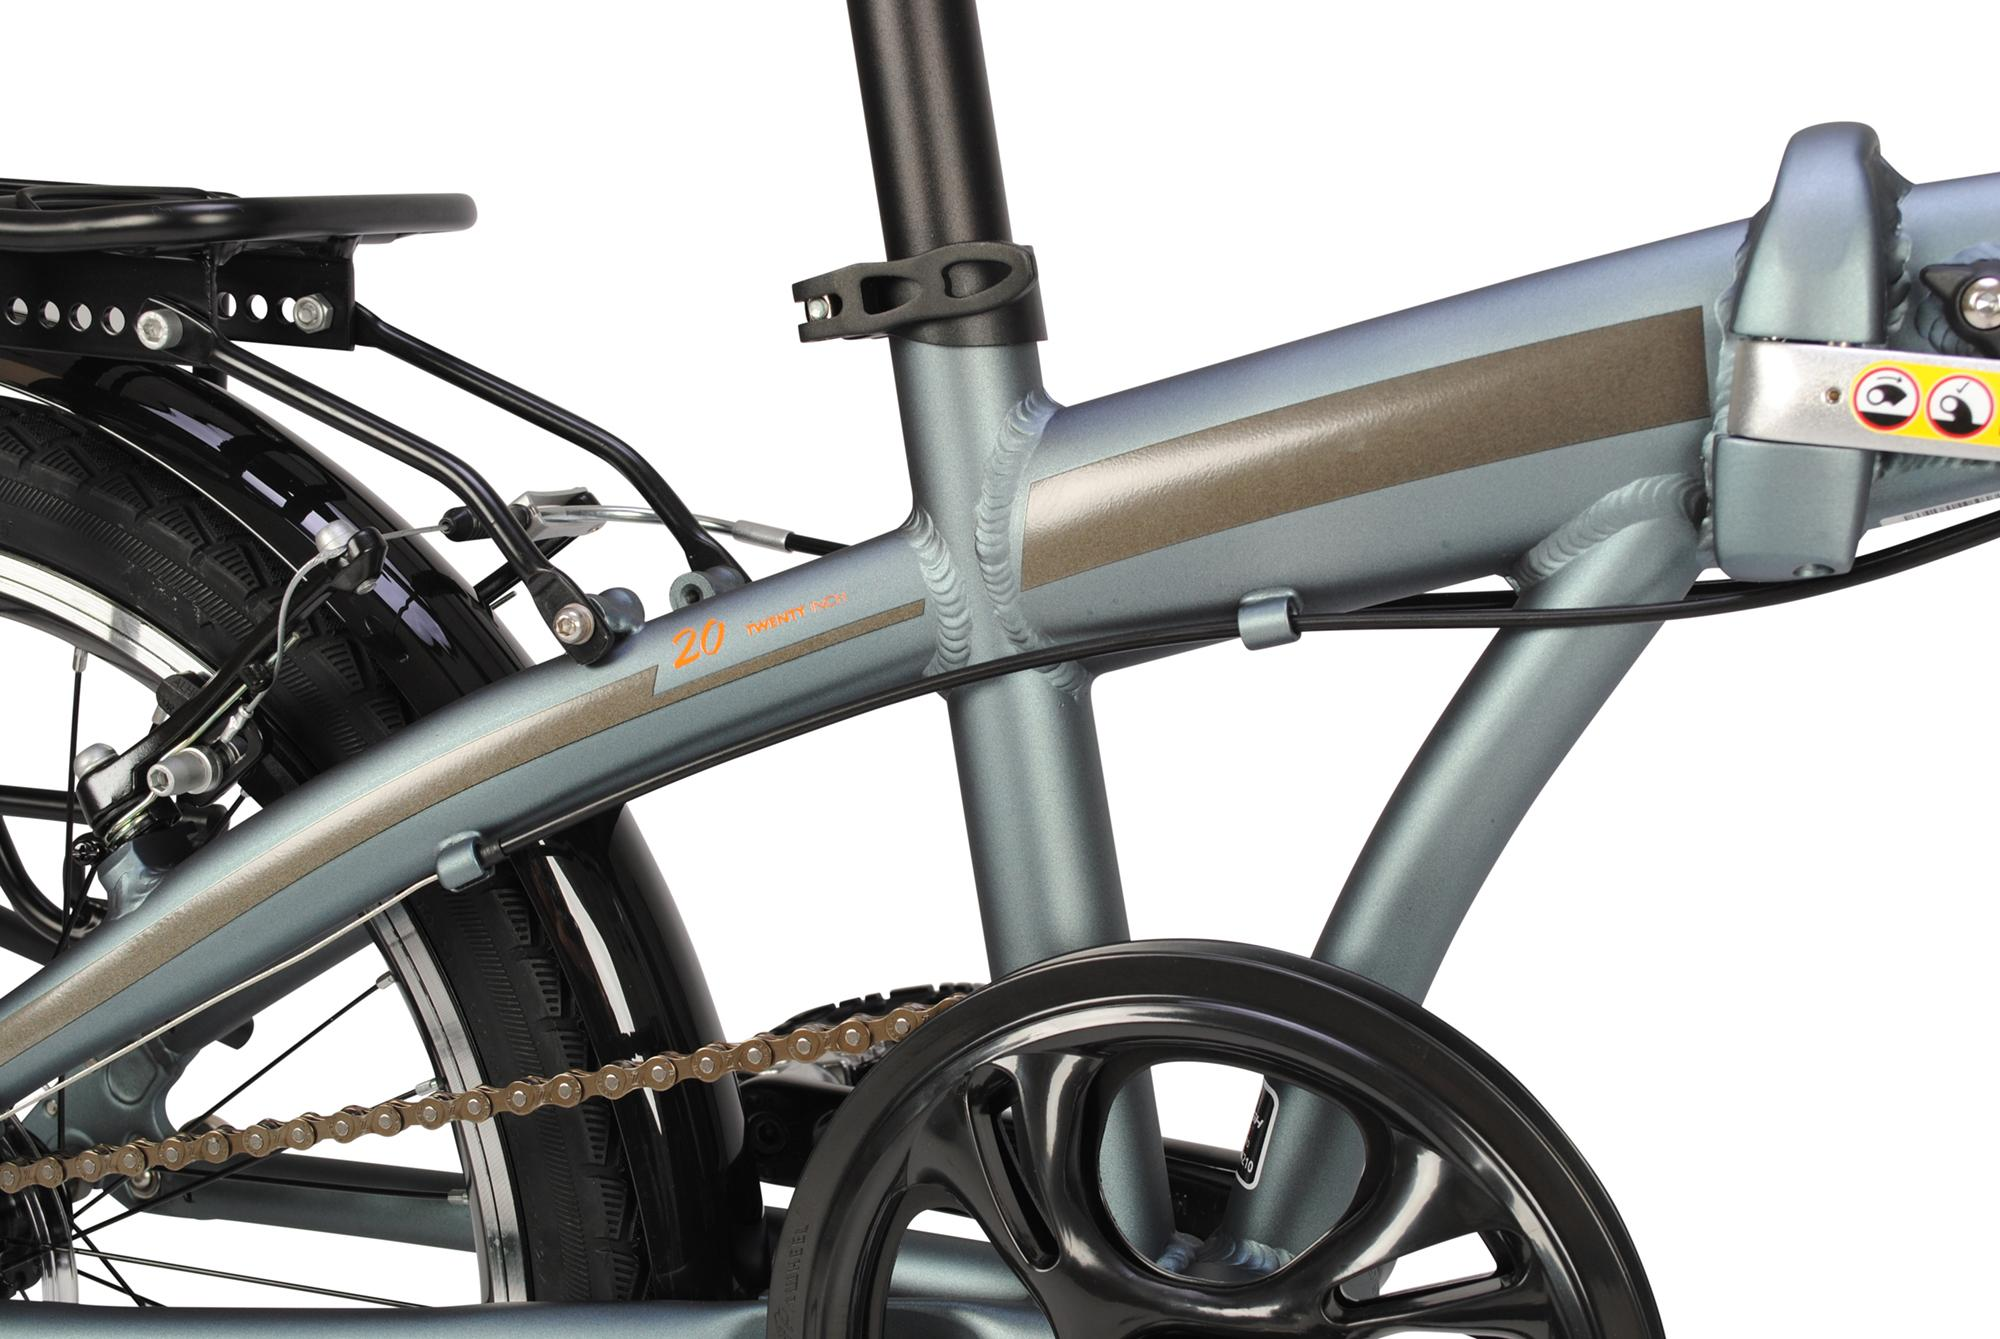 Drivetrain on the Raleigh Stowaway folding bike